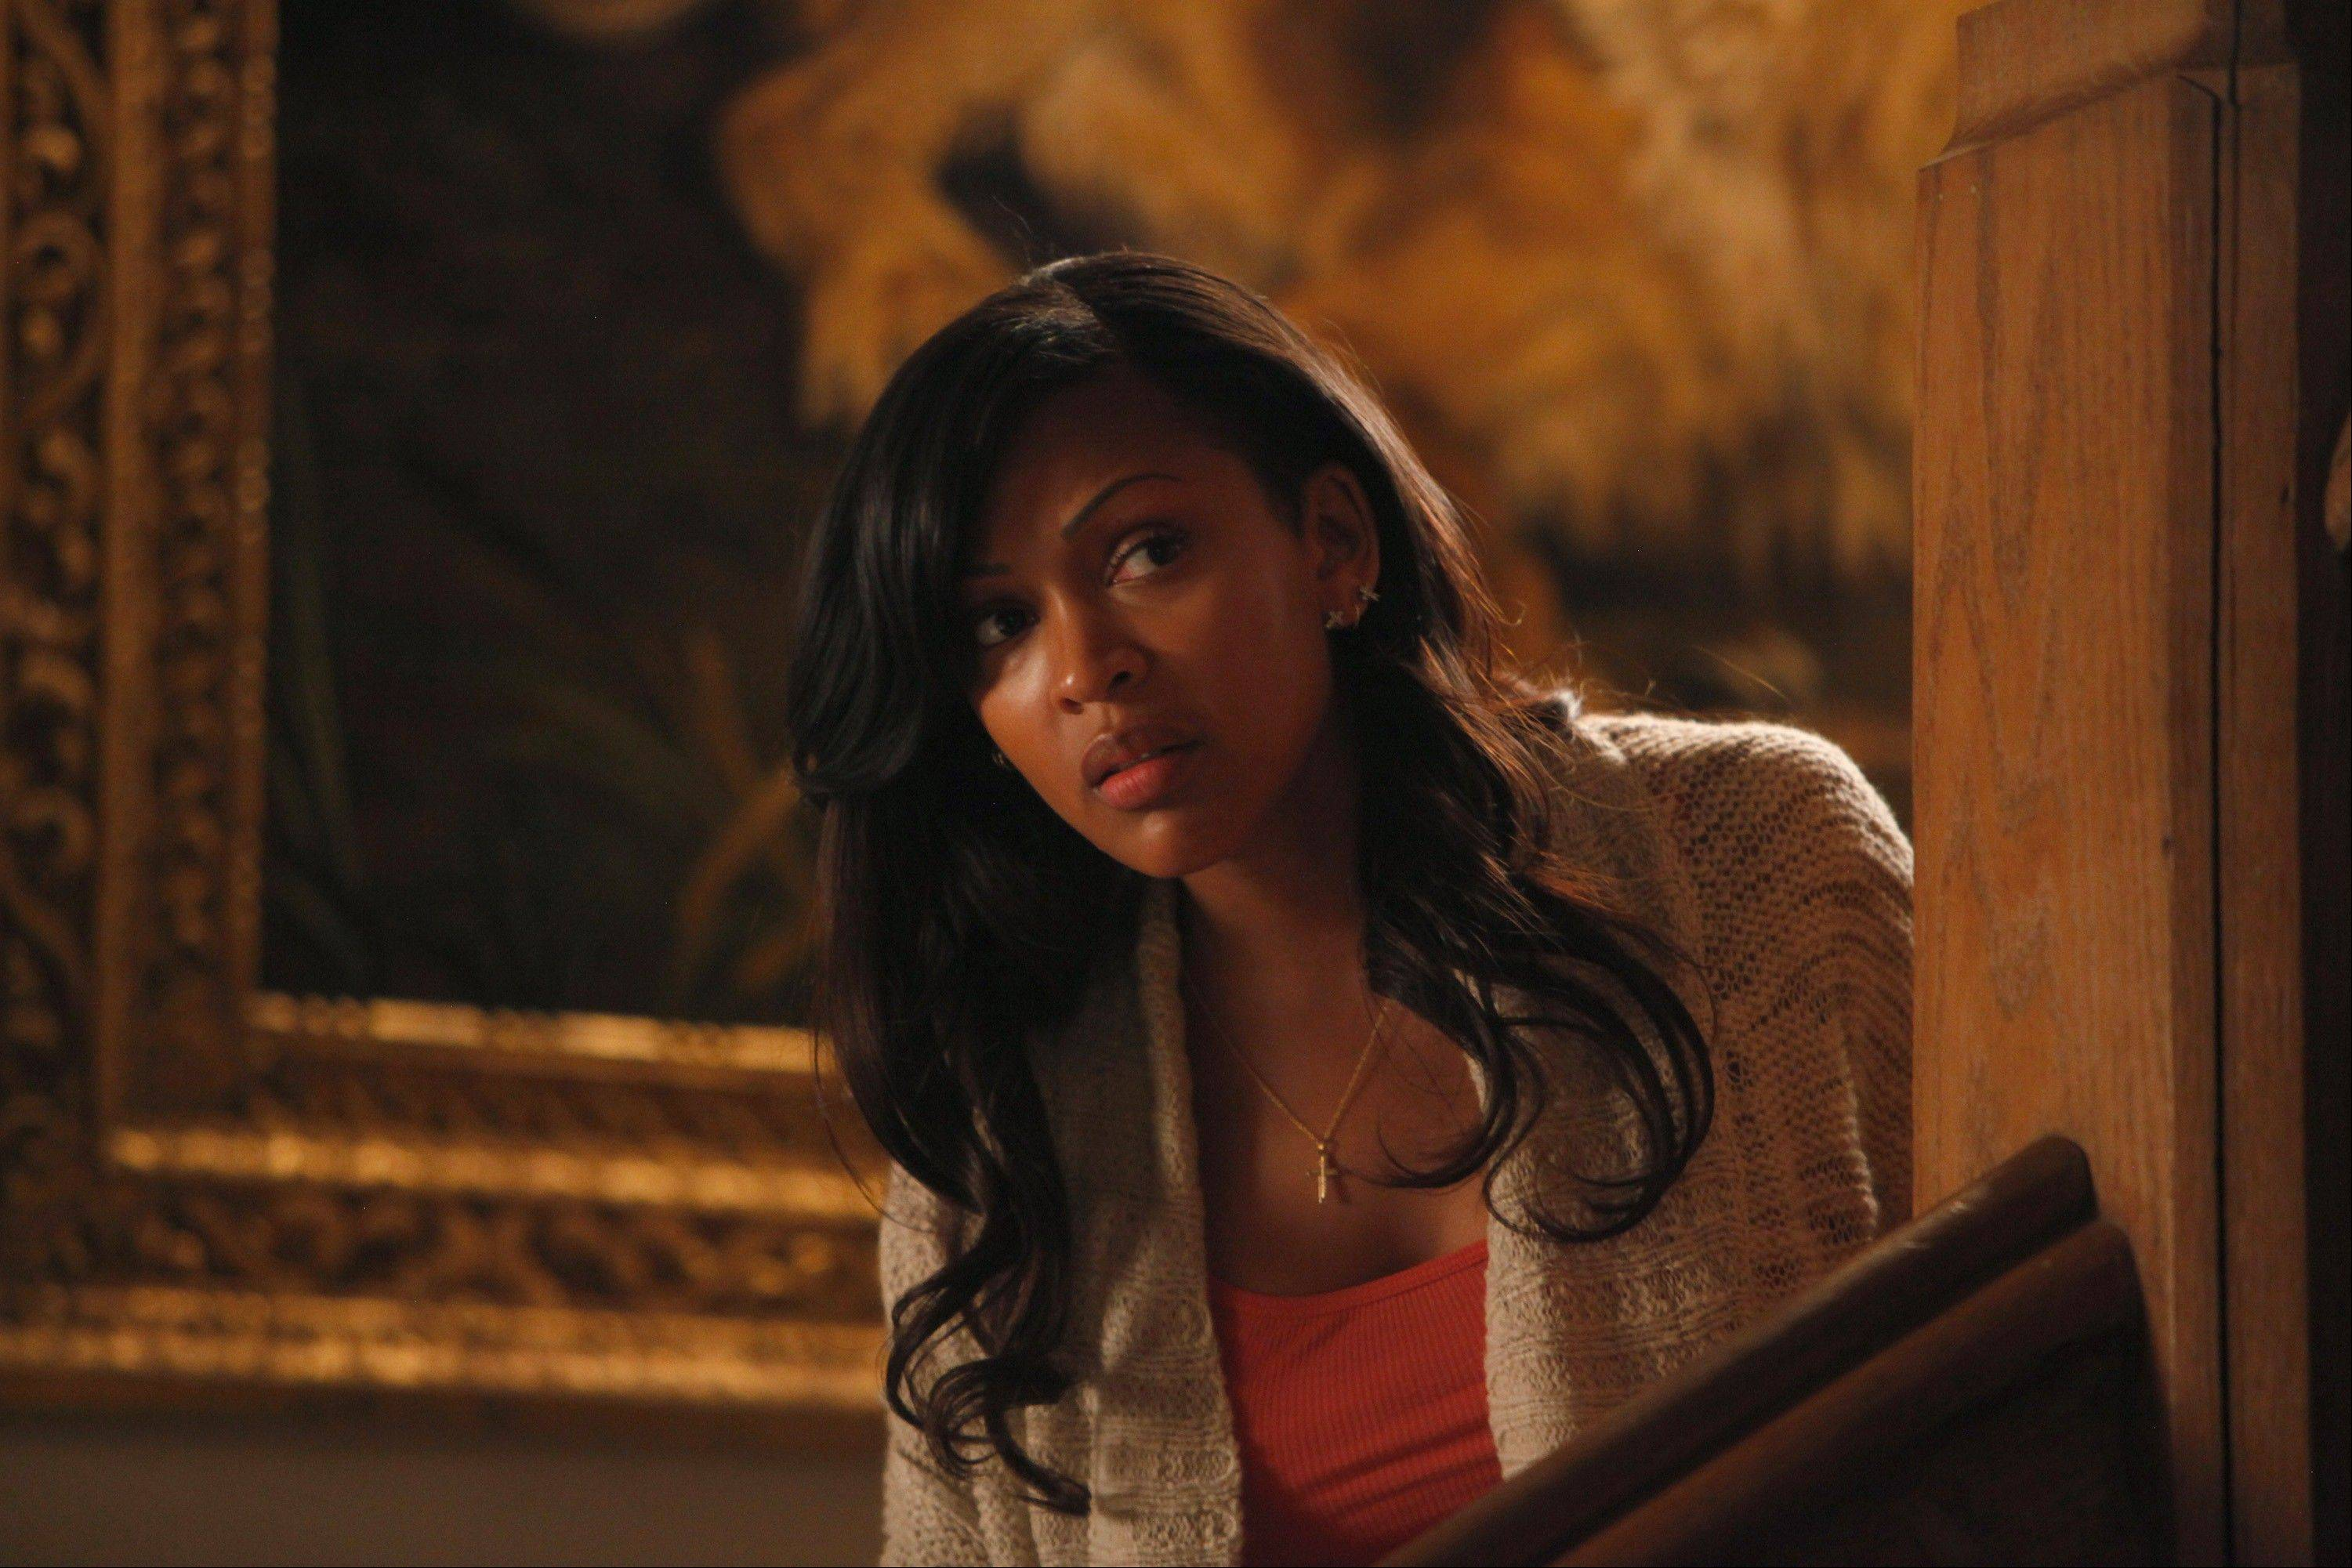 "Detective Joanna Padget Locasto (Meagan Good) uncovers dark secrets as she investigates the death of a wealthy socialite in NBC's ""Deception."""